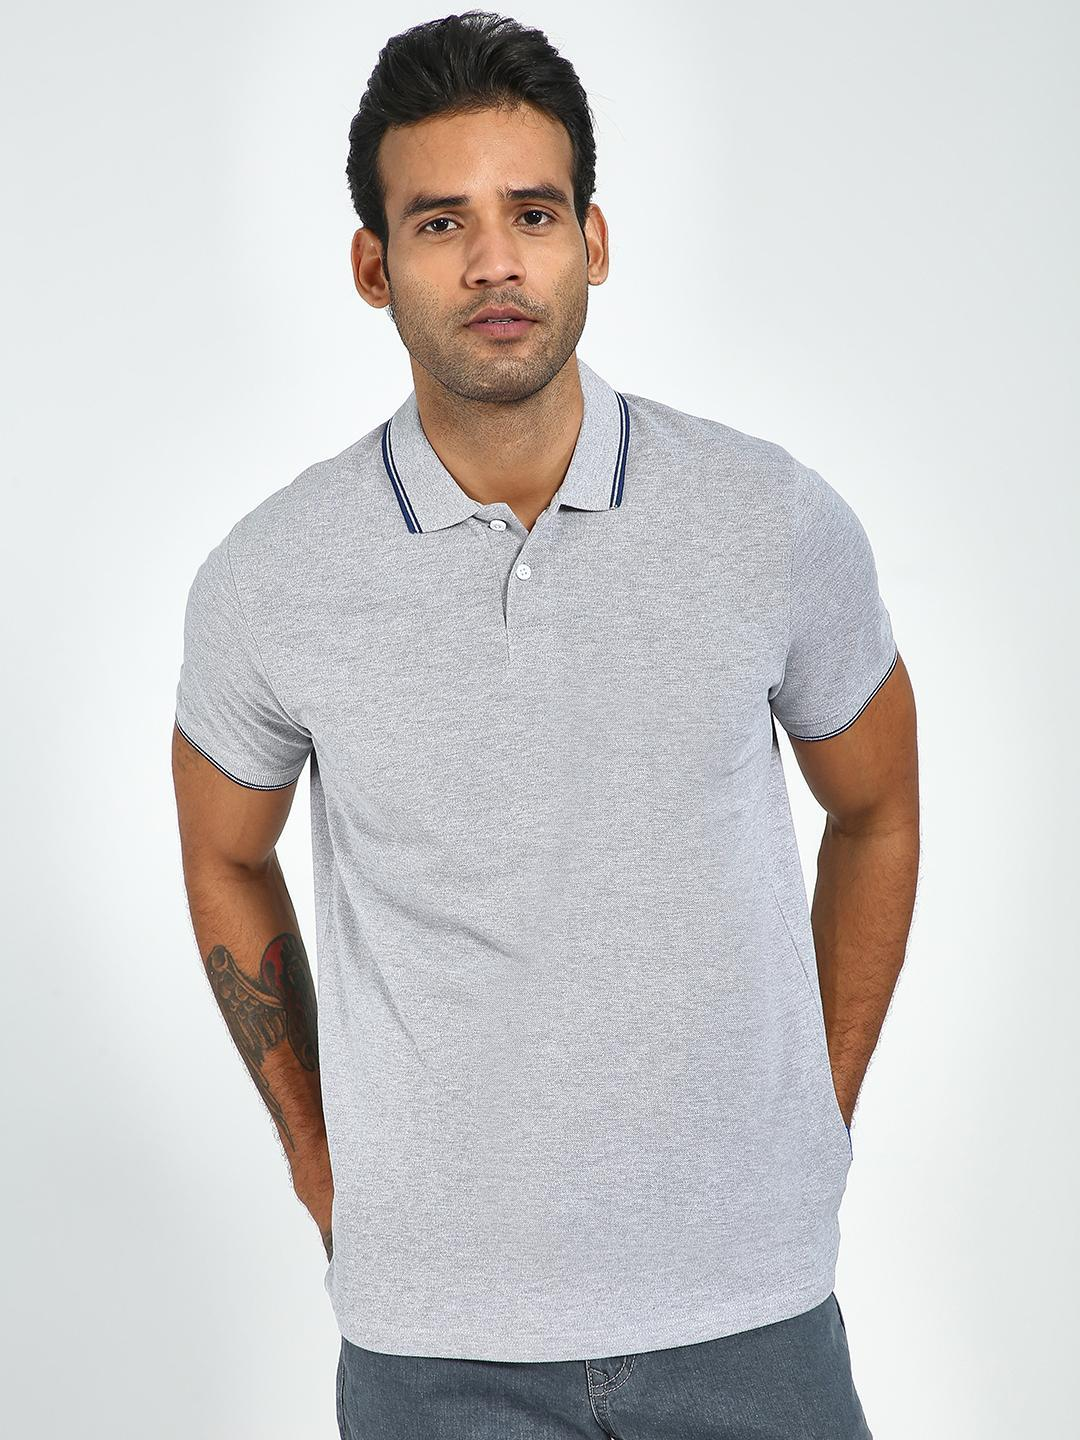 Blue Saint Grey Tipped Collar Polo Shirt 1